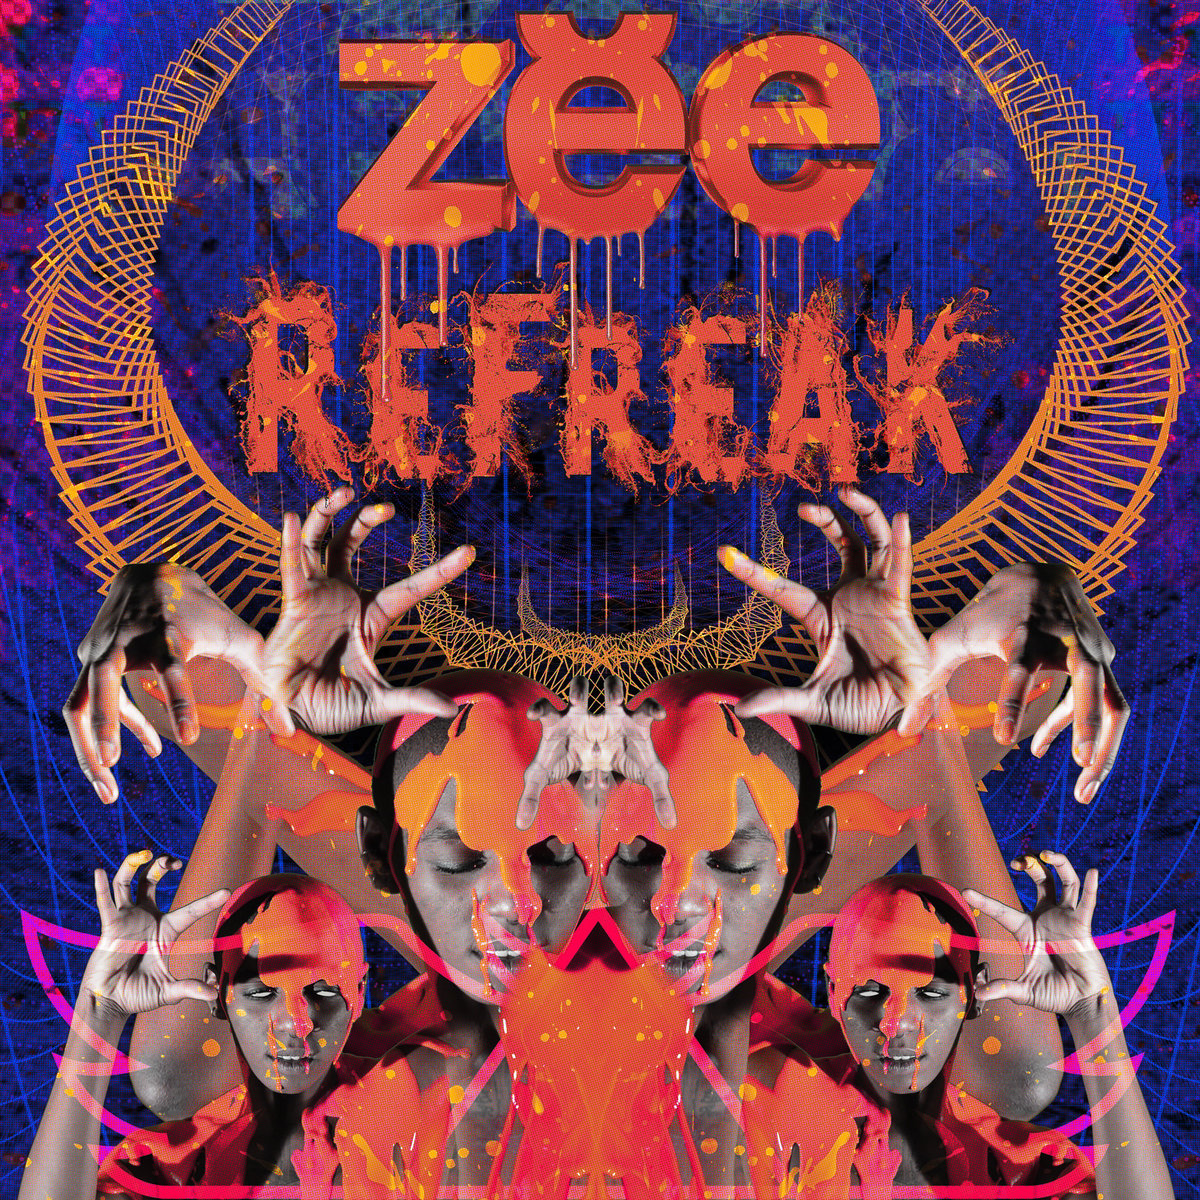 Zebbler Encanti Experience - Freakquency (Freddy Todd Remix) @ 'ReFreak' album (electronic, bass)